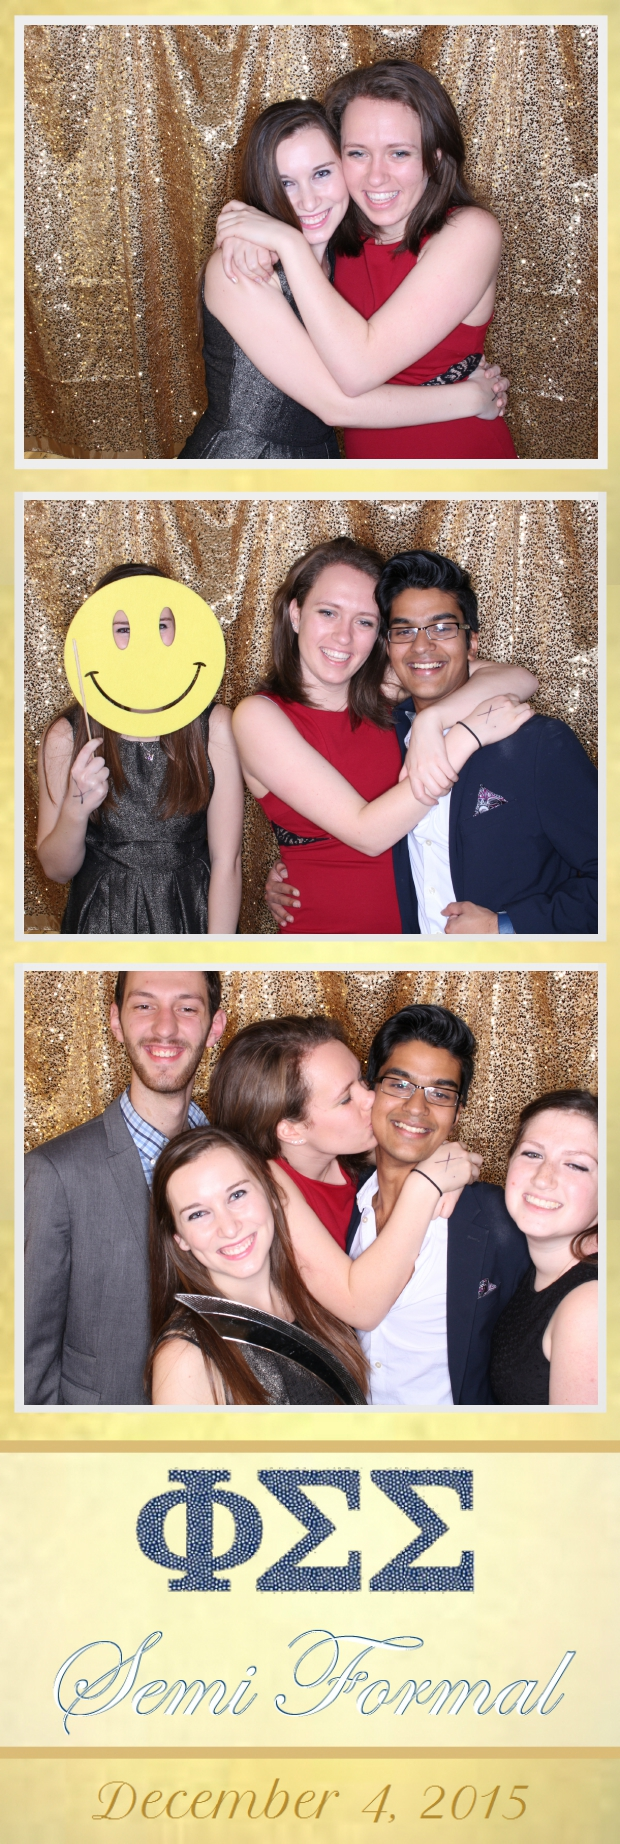 Guest House Events Photo Booth Phi Sigma Sigma Semi Formal (48).jpg